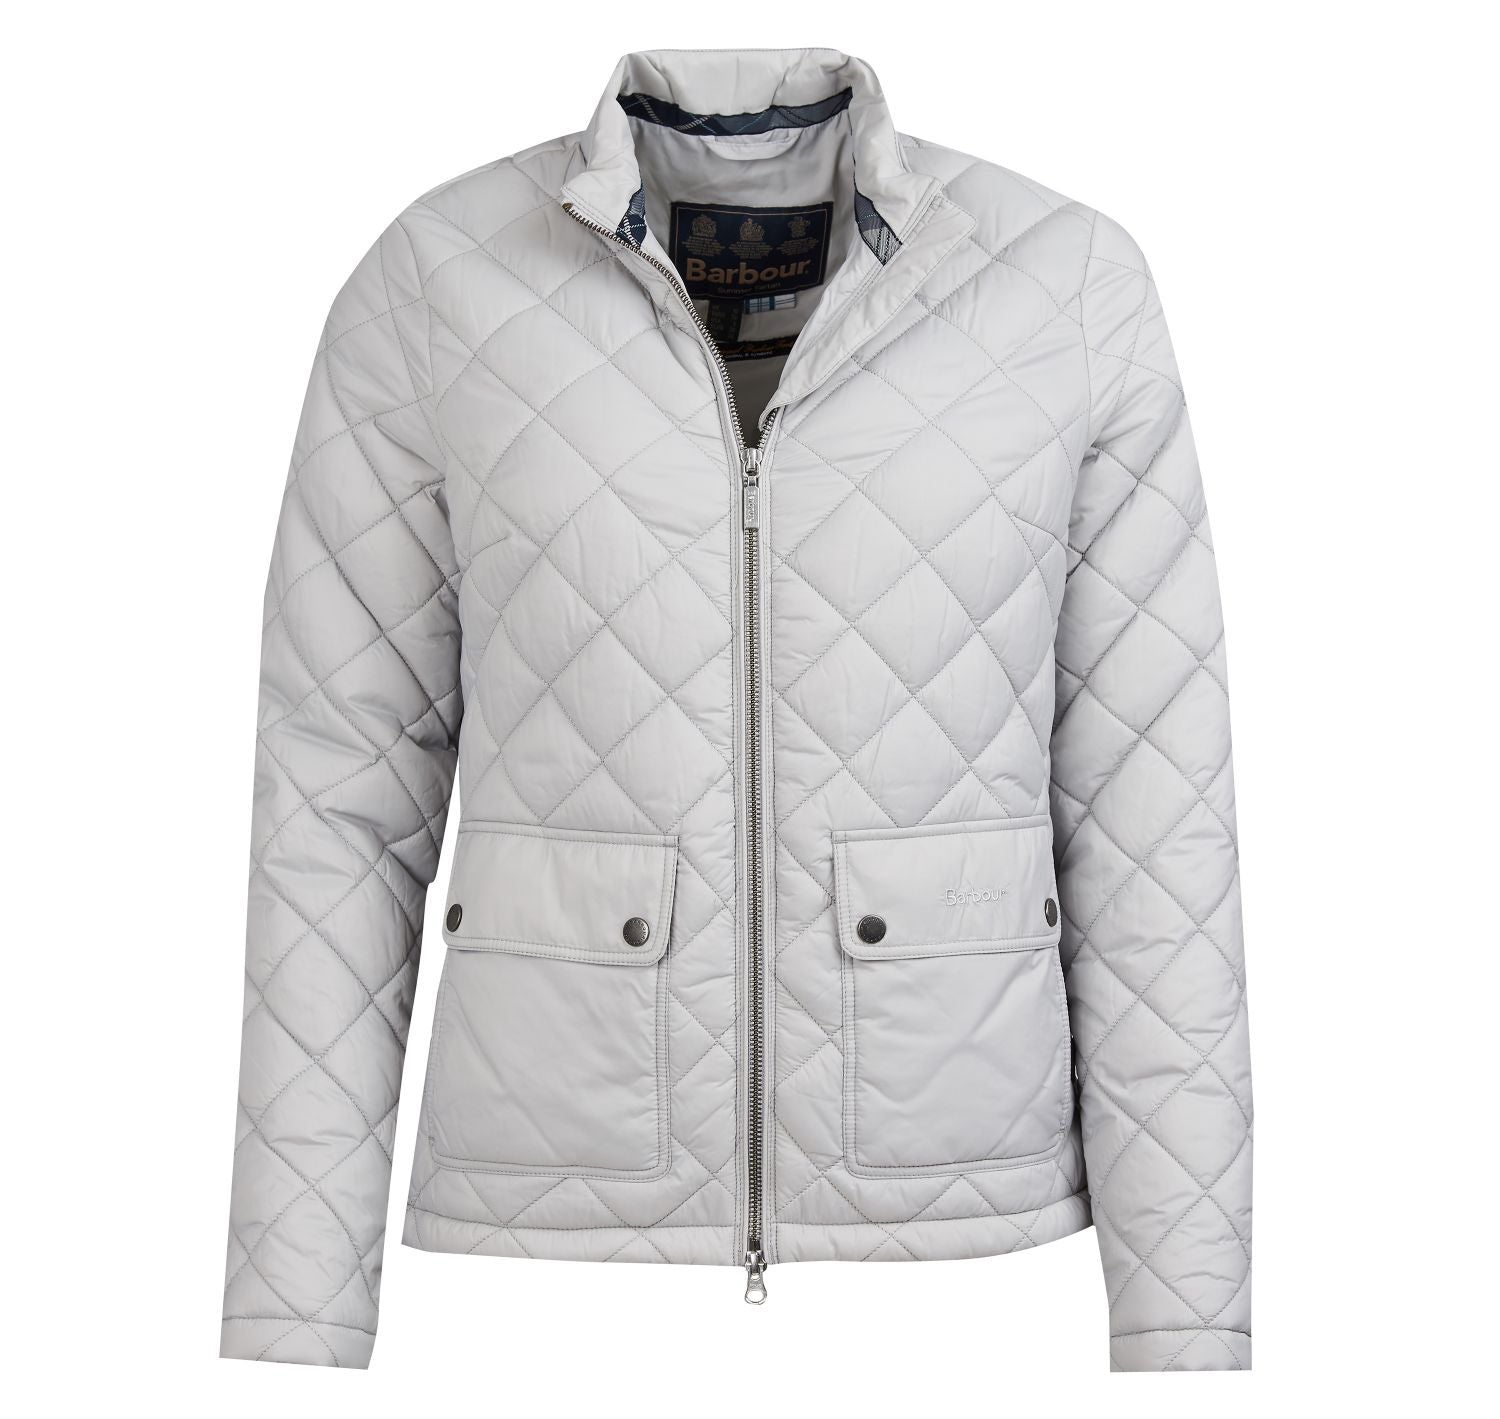 Barbour Lorne Quilted Jacket - North Shore Saddlery